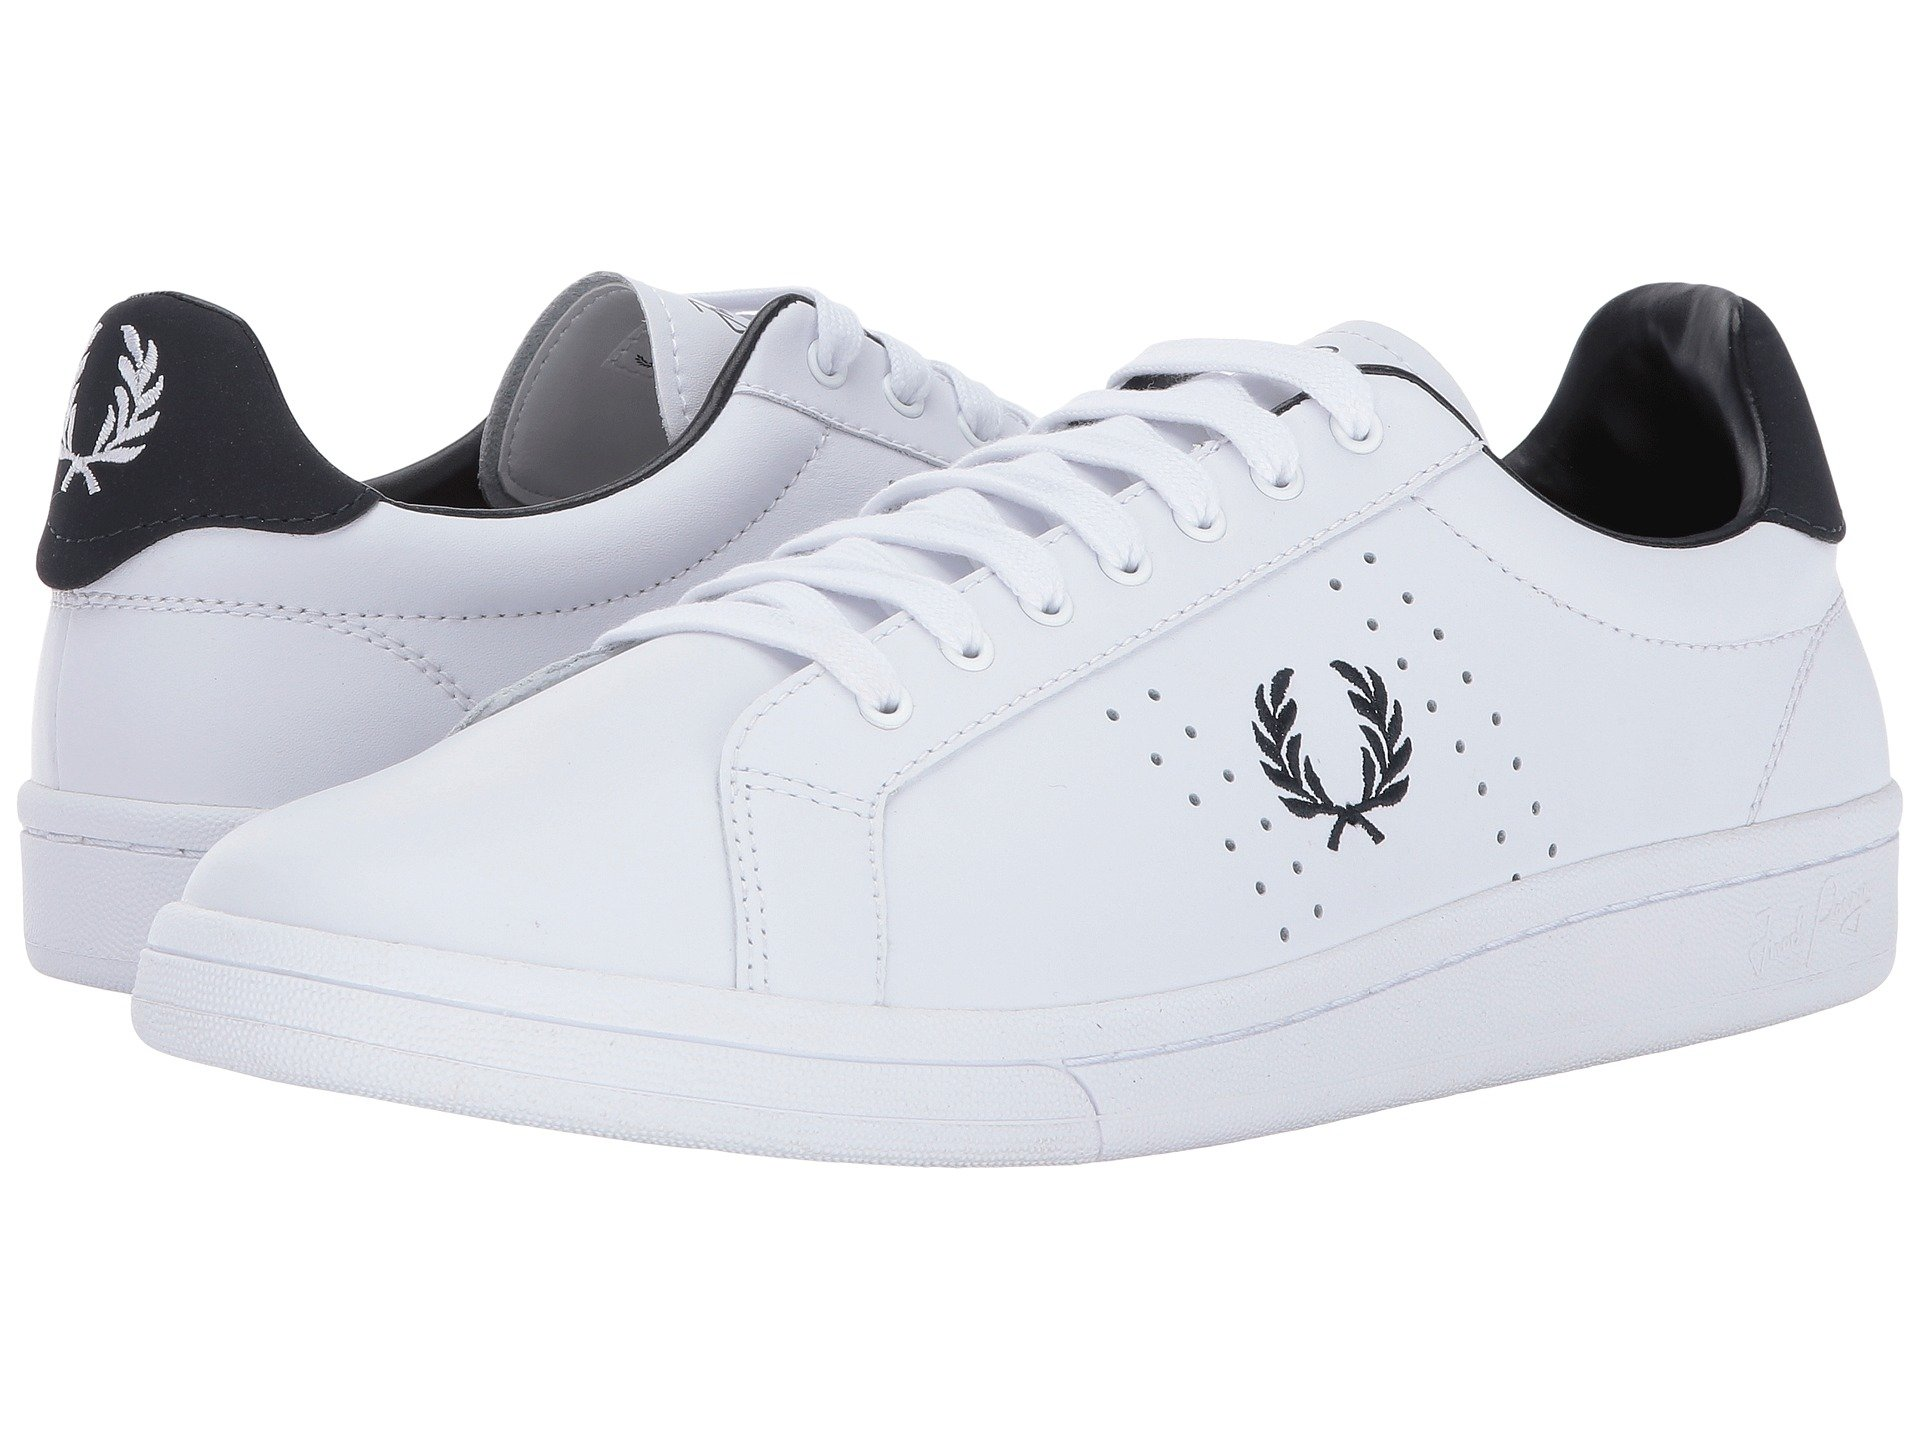 bf208c47 Men's Fred Perry Shoes + FREE SHIPPING | Zappos.com